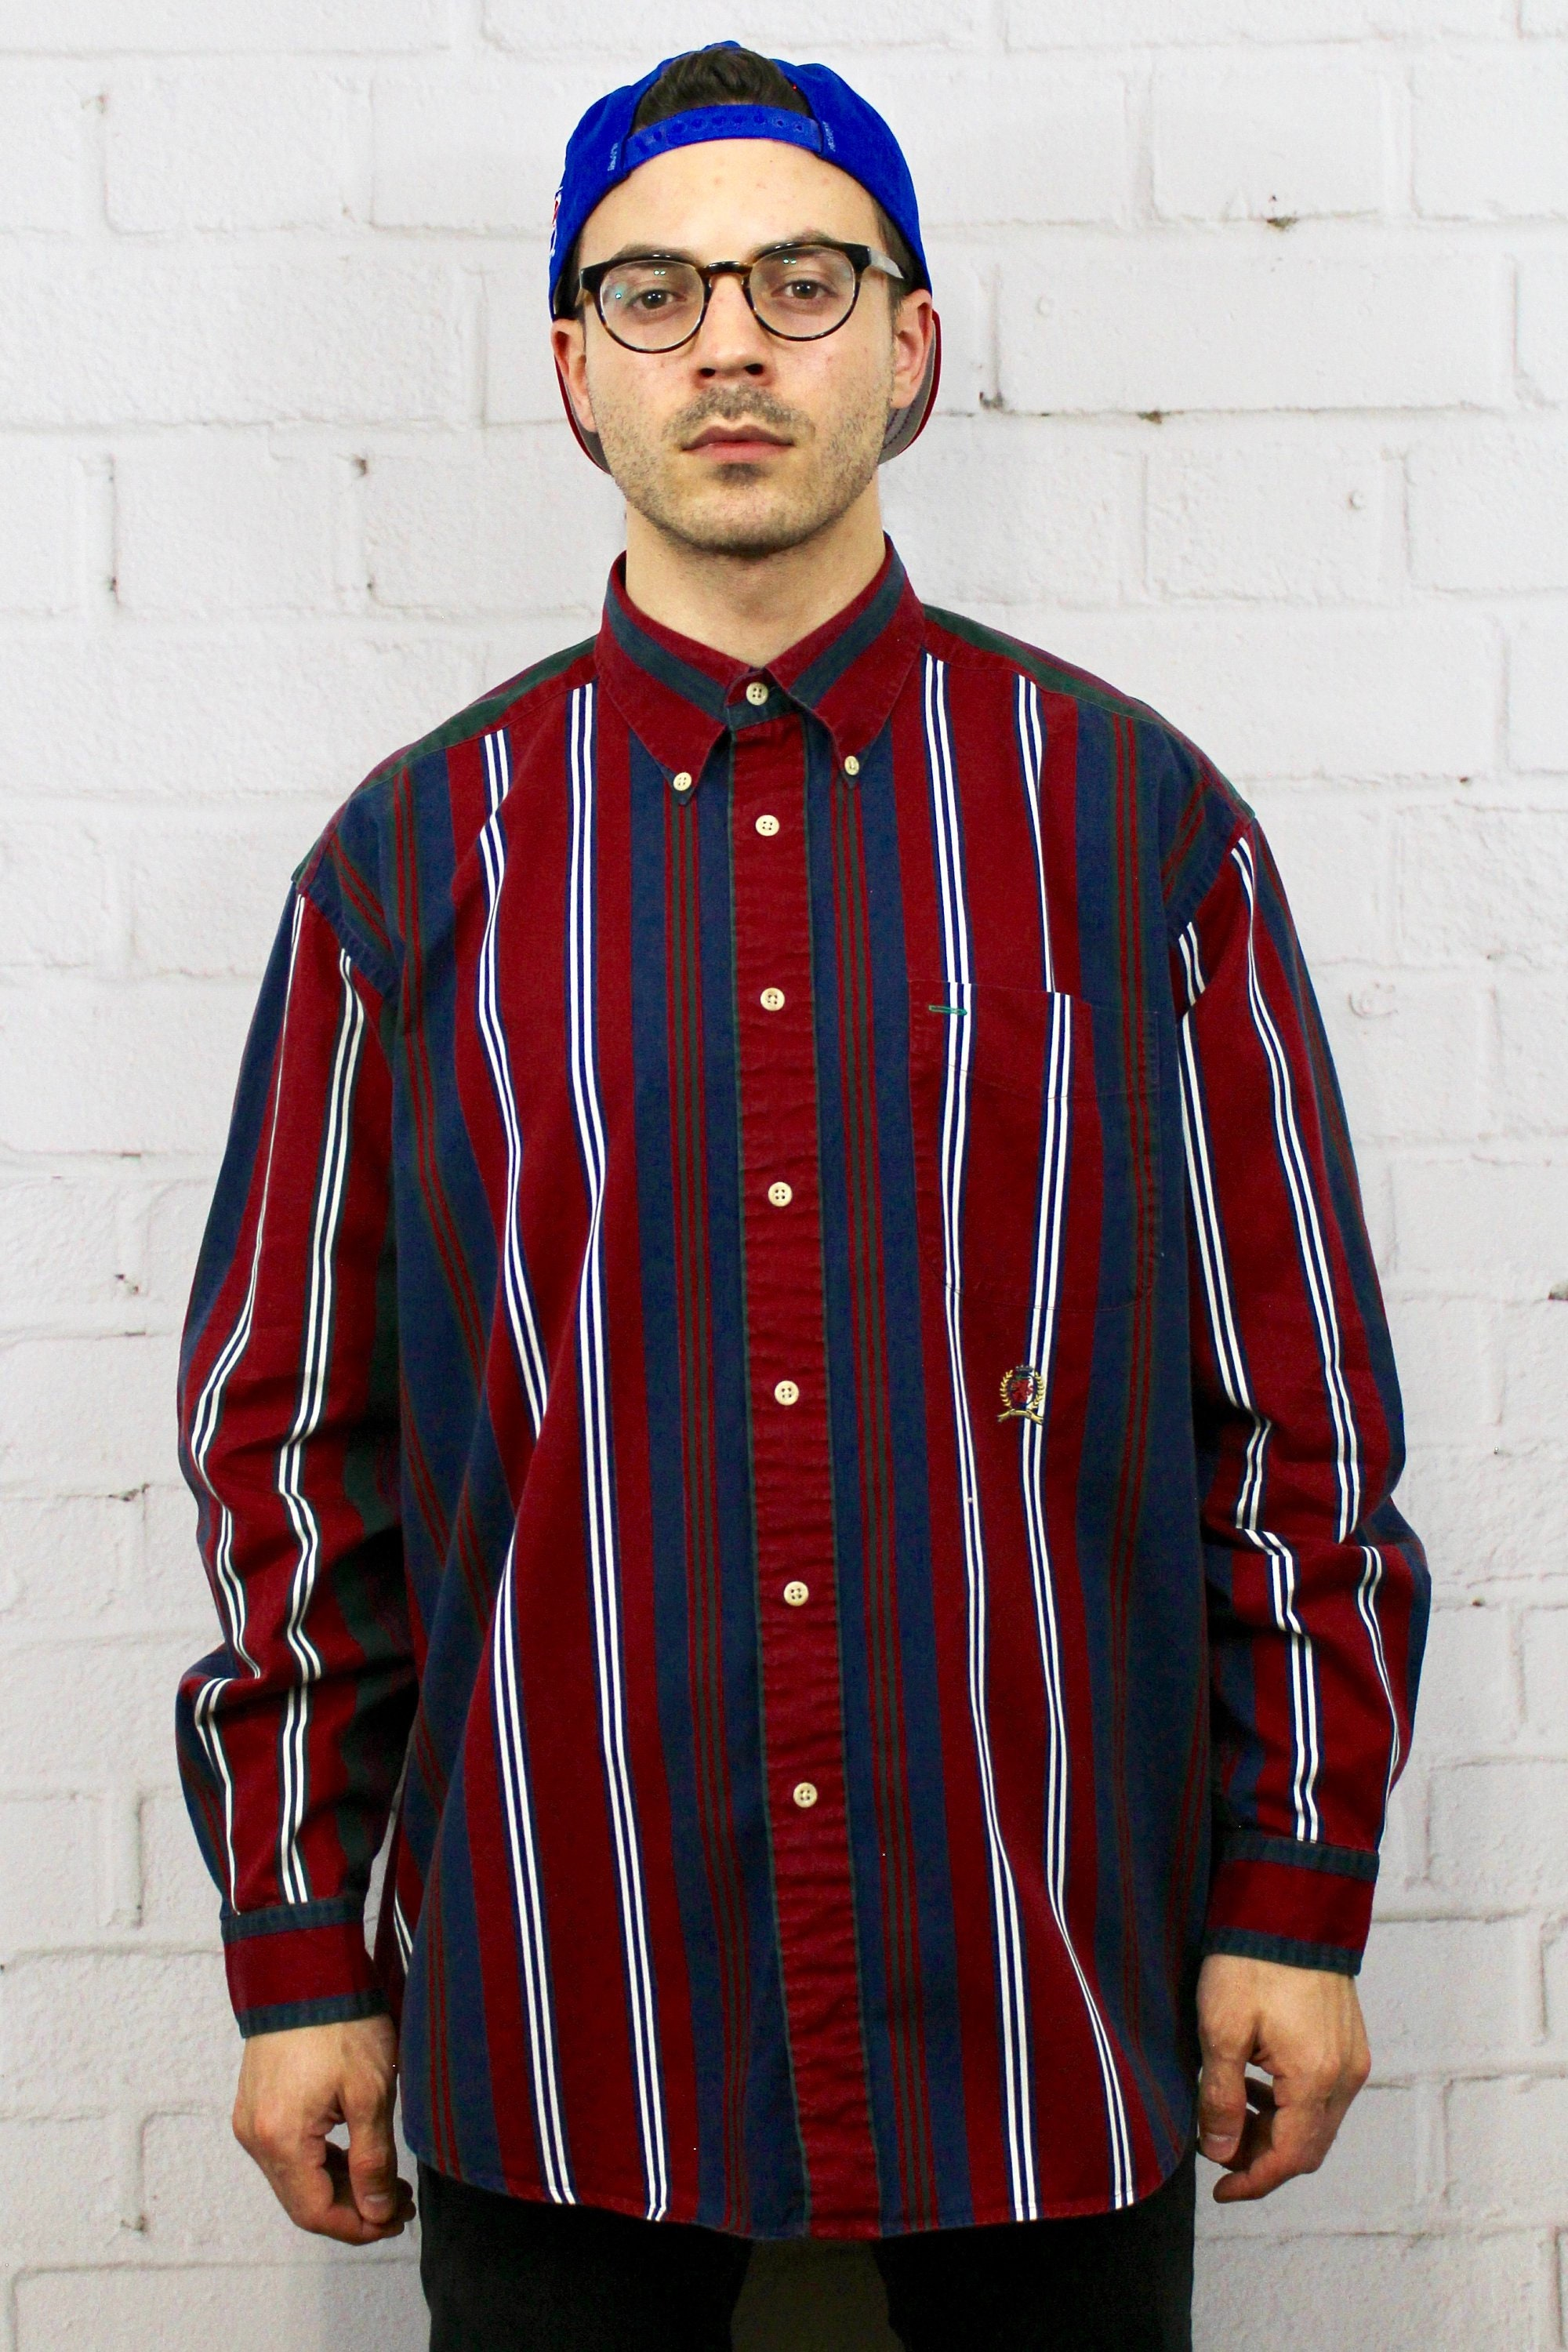 82fb2ab9a5 90s Tommy Hilfiger Vertical Stripe Shirt / Mens Vintage 80s Dad Polo Style  Red Blue Green Striped Long Sleeve Button Down / Fresh Prince